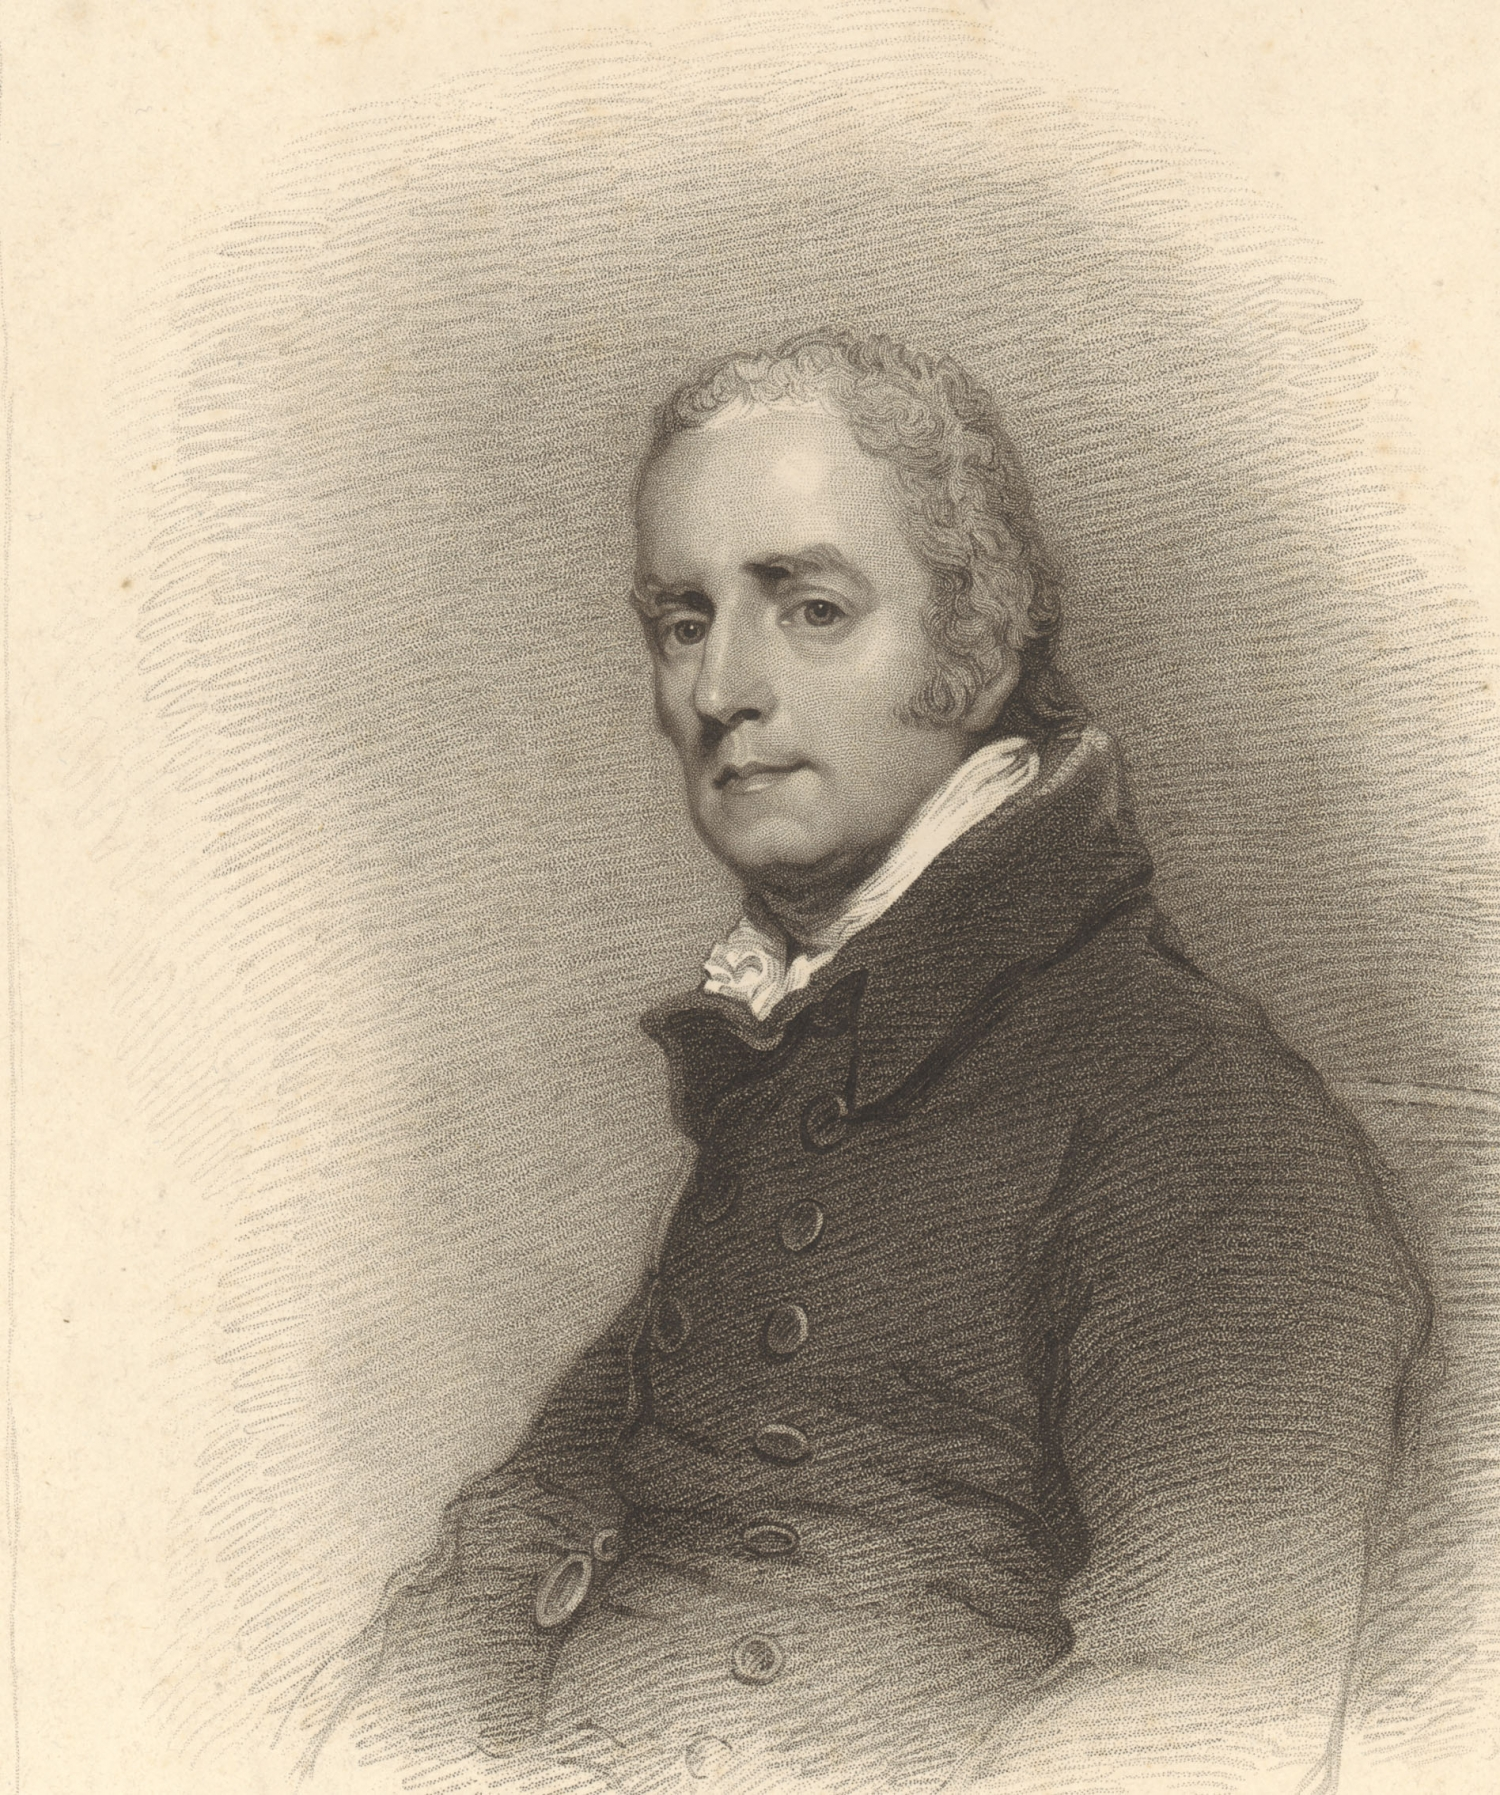 B/W portrait of man wearing dark coat looking sideways towards the artist with grey hair and white shirt collar.